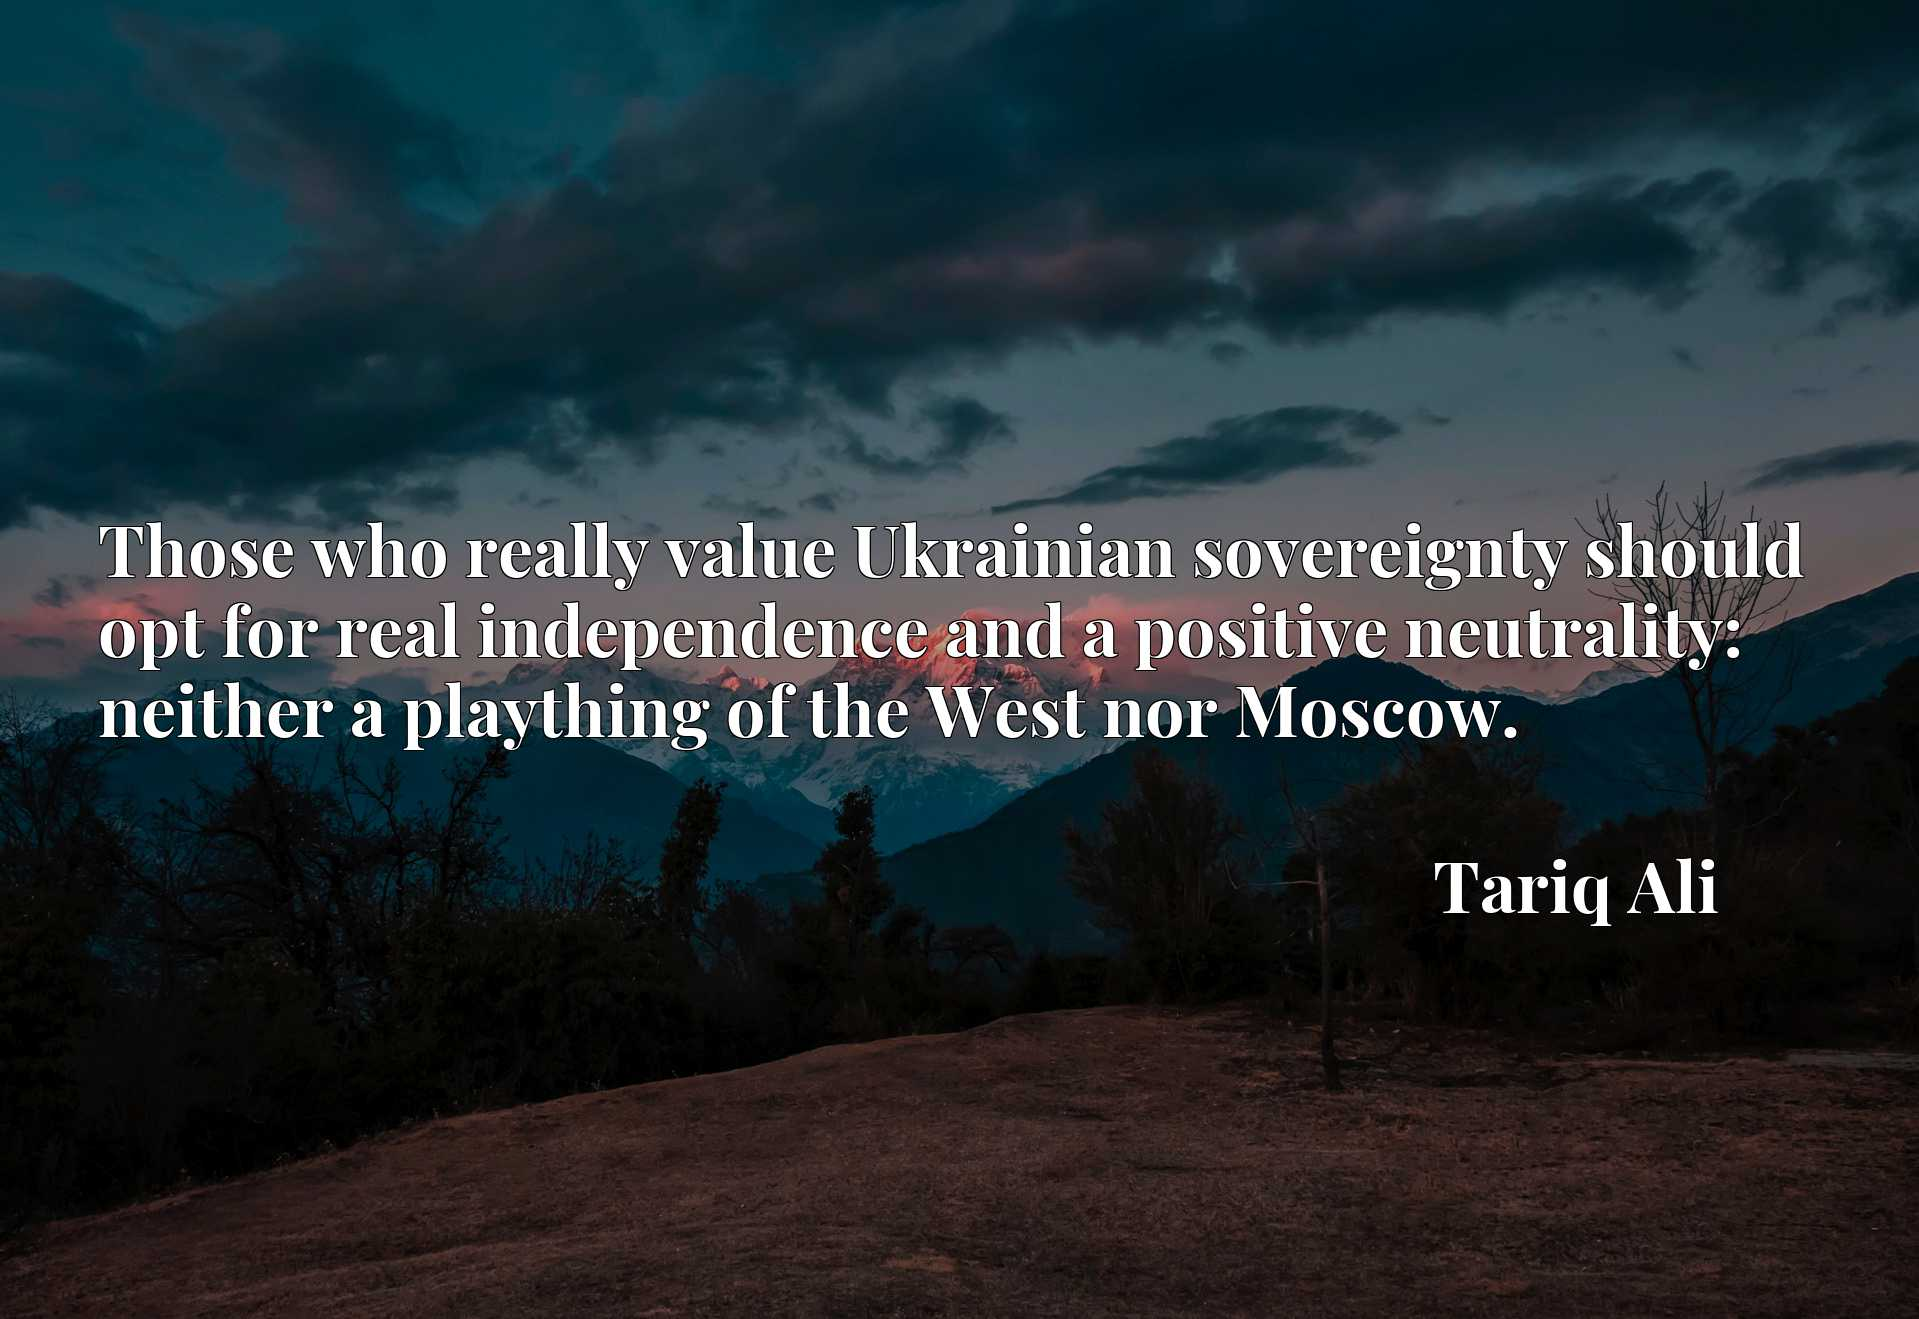 Those who really value Ukrainian sovereignty should opt for real independence and a positive neutrality: neither a plaything of the West nor Moscow.